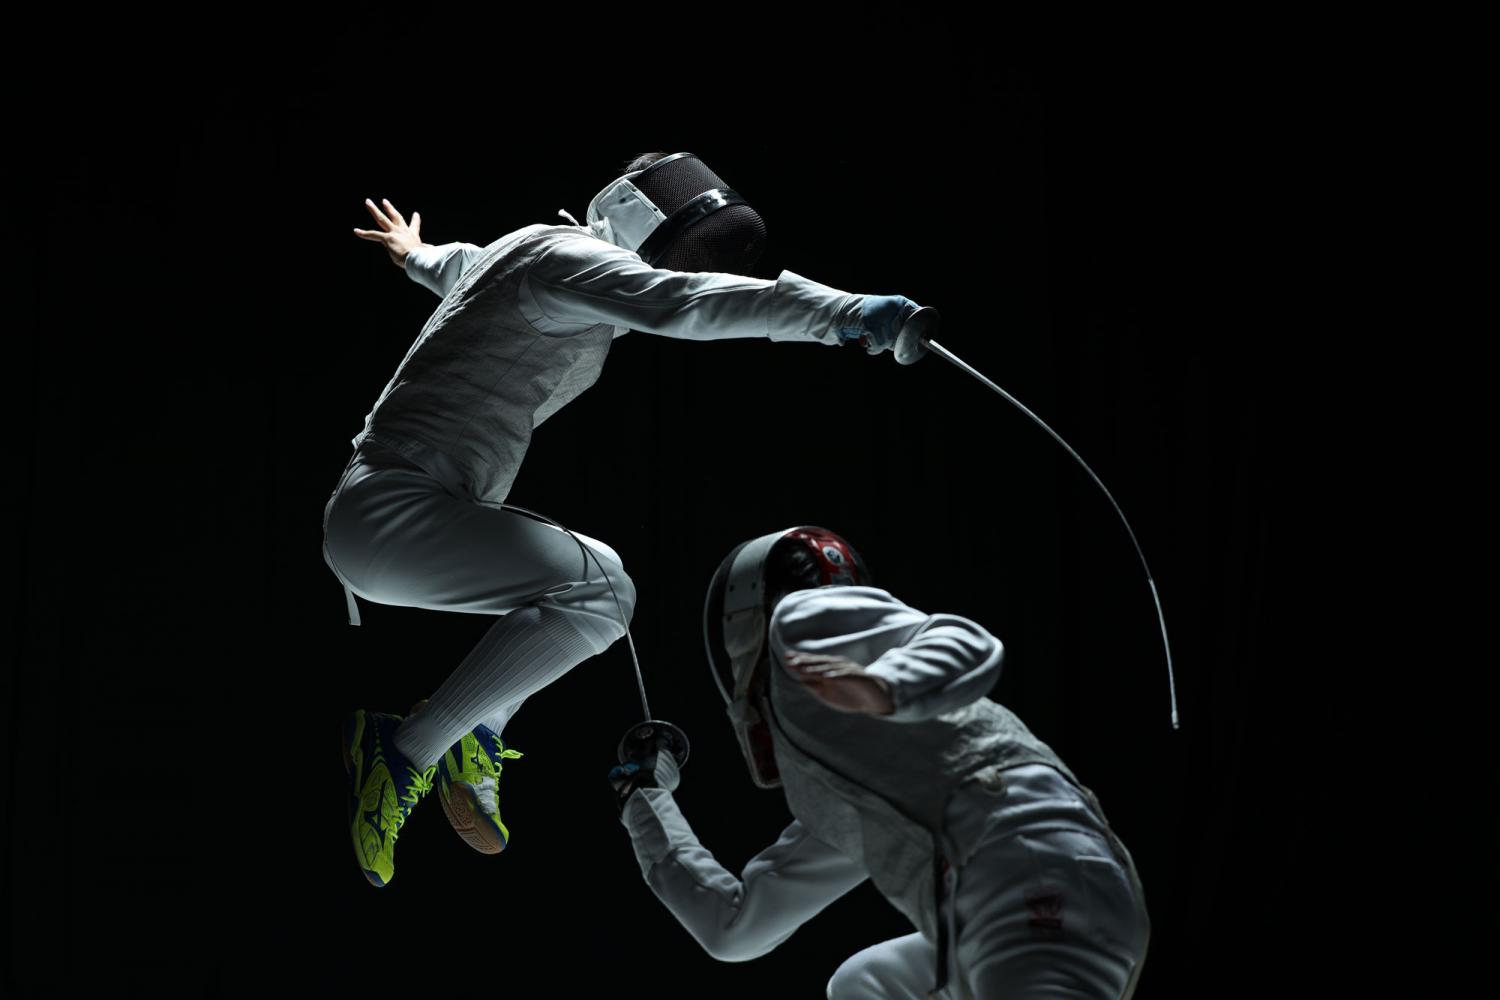 Two competitive fencers mid-combat against a black background, photographed with the Canon RF 70-200mm f2.8L IS USM lens